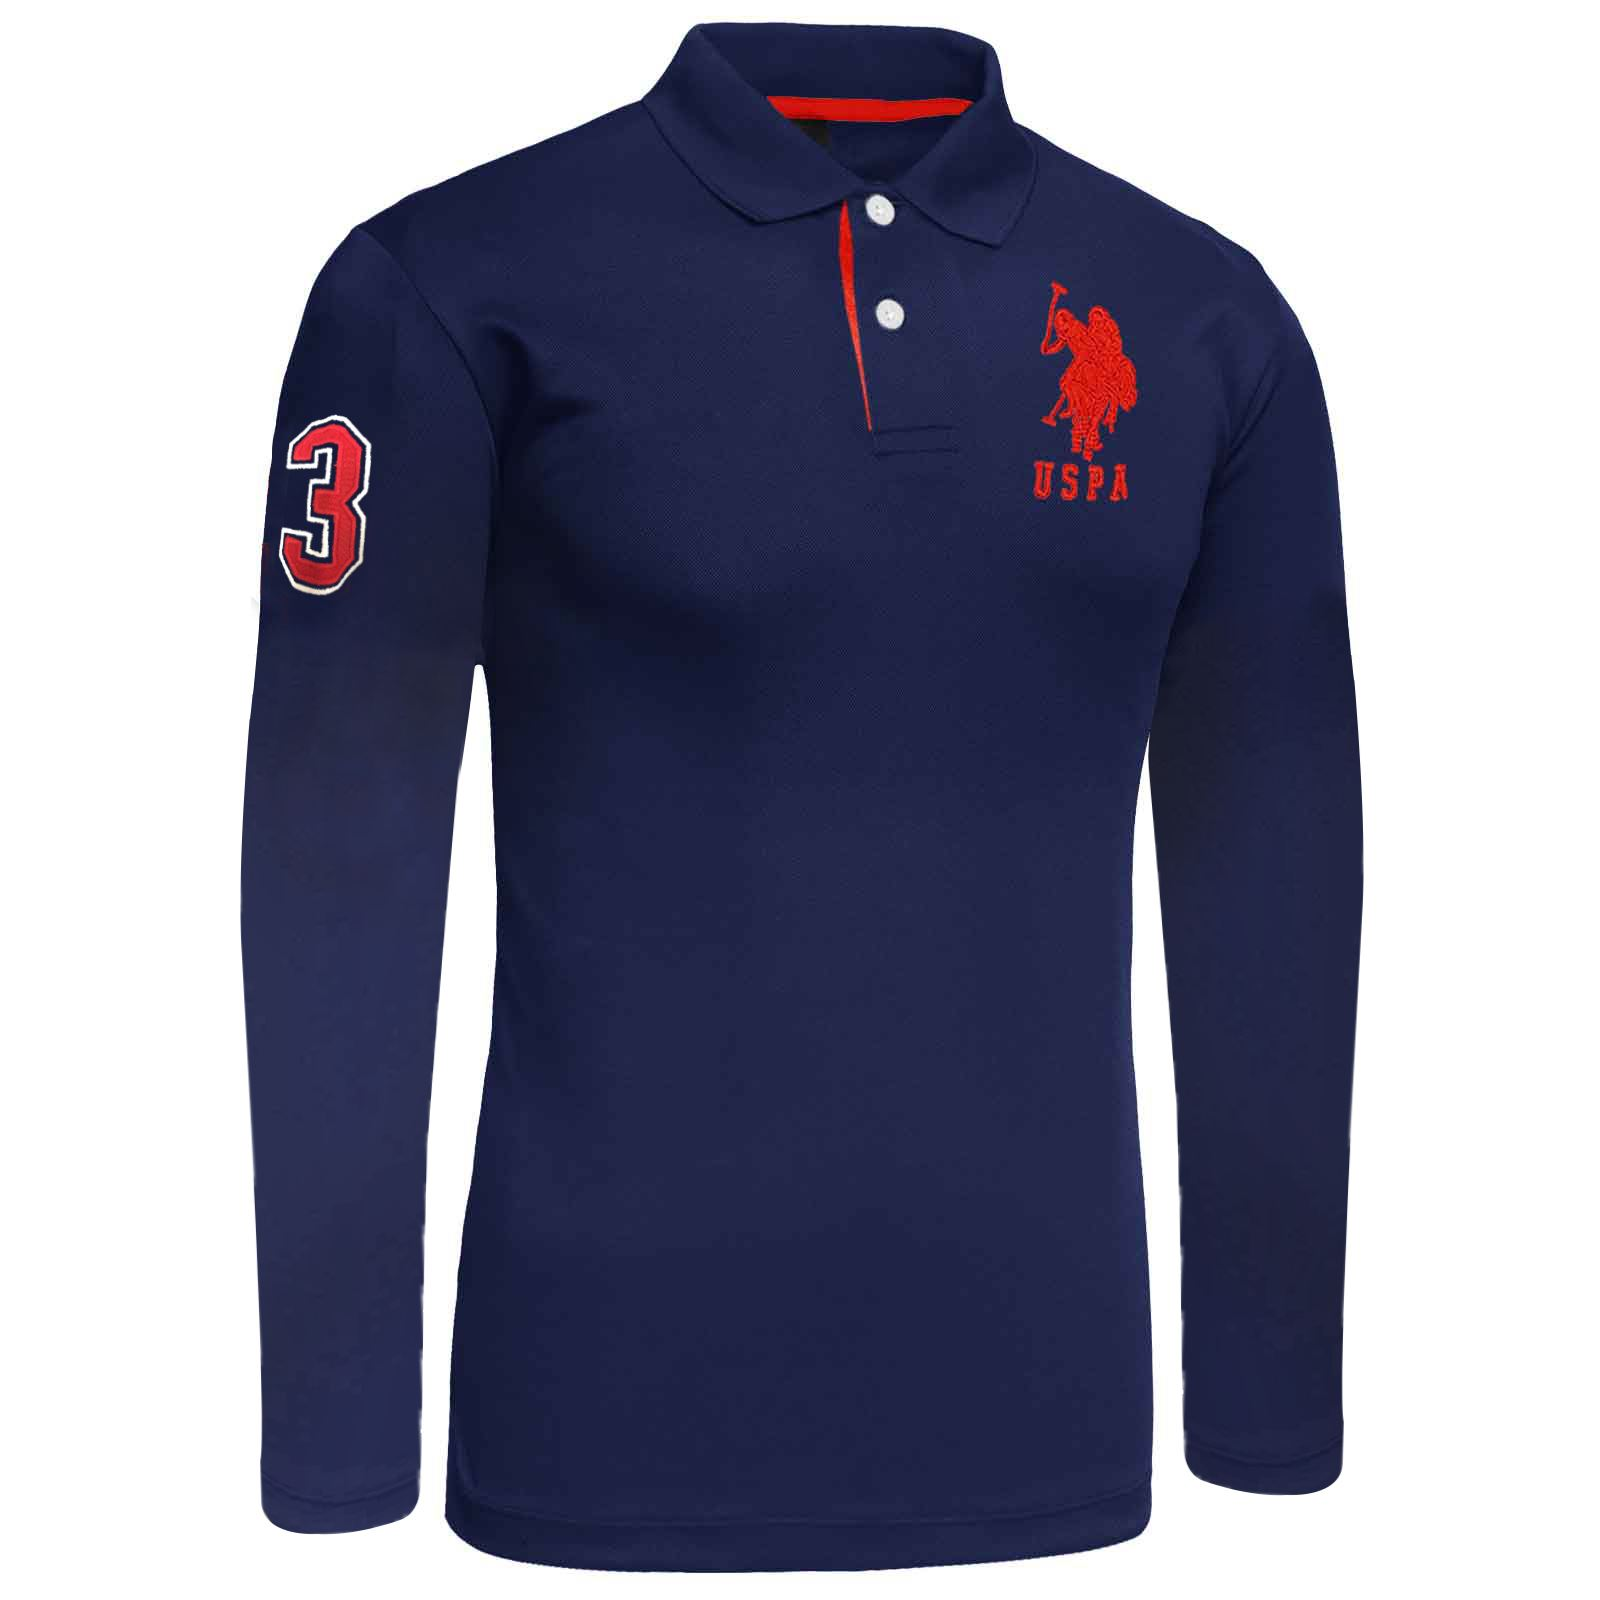 mens us polo assn long sleeve polo shirt pique top style. Black Bedroom Furniture Sets. Home Design Ideas